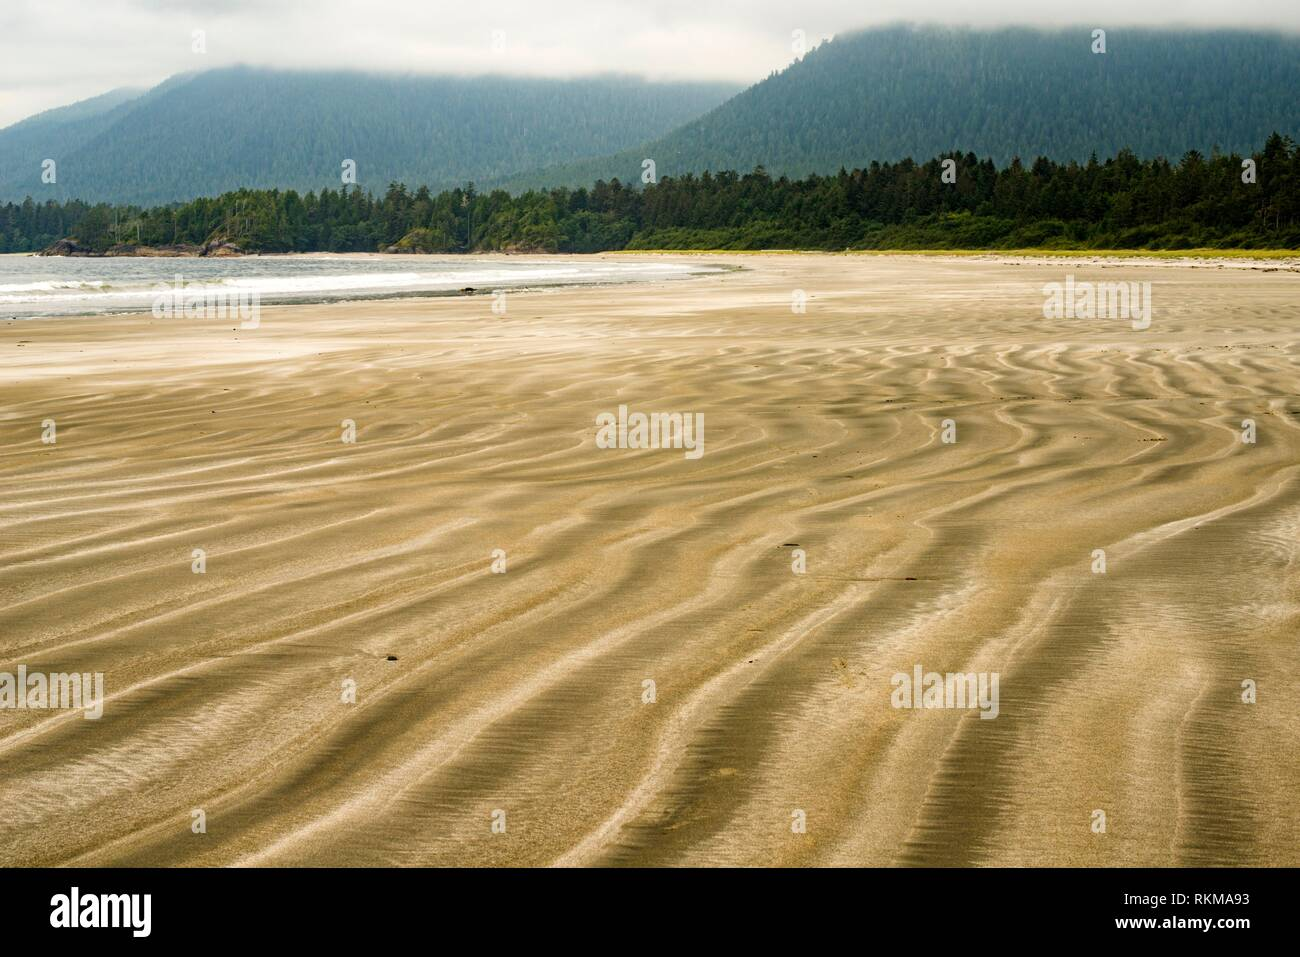 Beach on Flores Island, off the west coast of Vancouver Island, British Columbia, Canada. Stock Photo